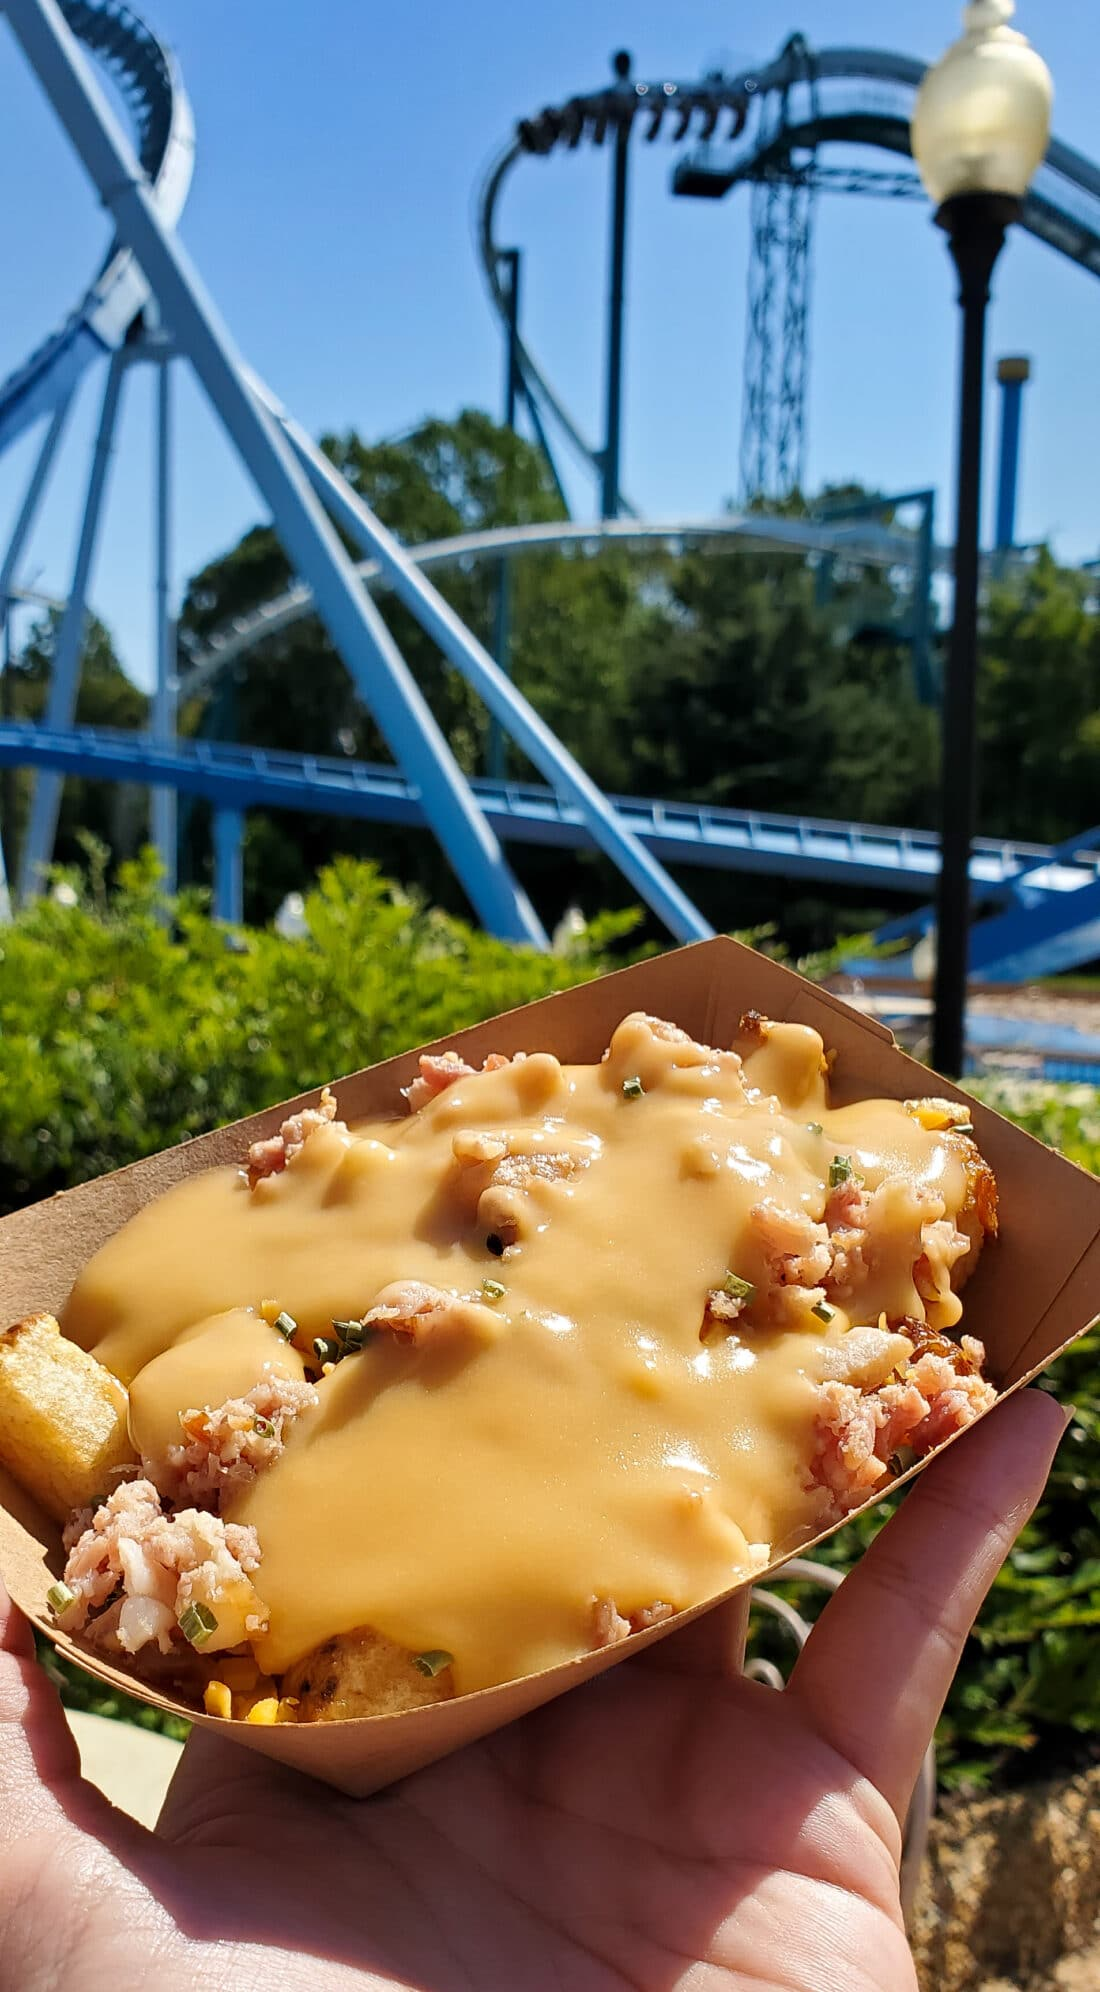 Taste of Busch Gardens Irish Fries. Sip, sample, and soar at this limited-capacity during the Taste of Busch Gardens special event in Williamsburg, VA. Select areas of the park will be open so there is plenty of room to safely enjoy specialty food and drinks as you stroll through our 6 charming villages.